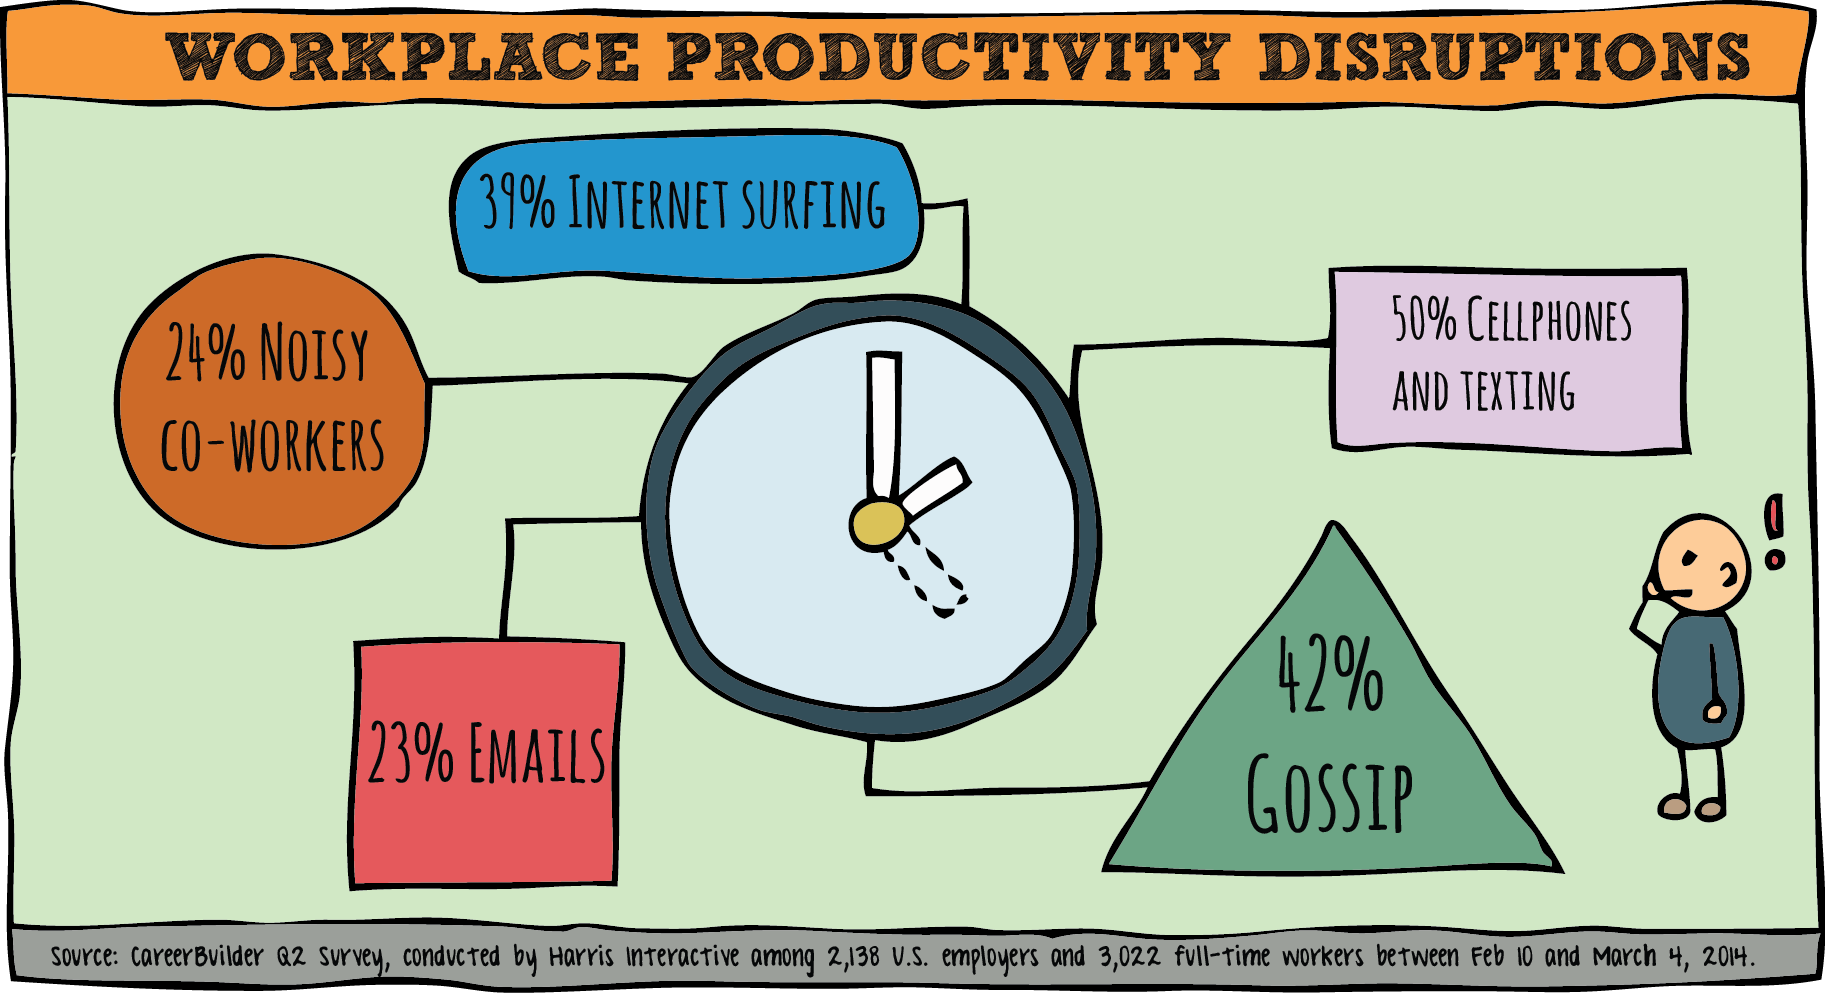 survey statistics workplace distraction types